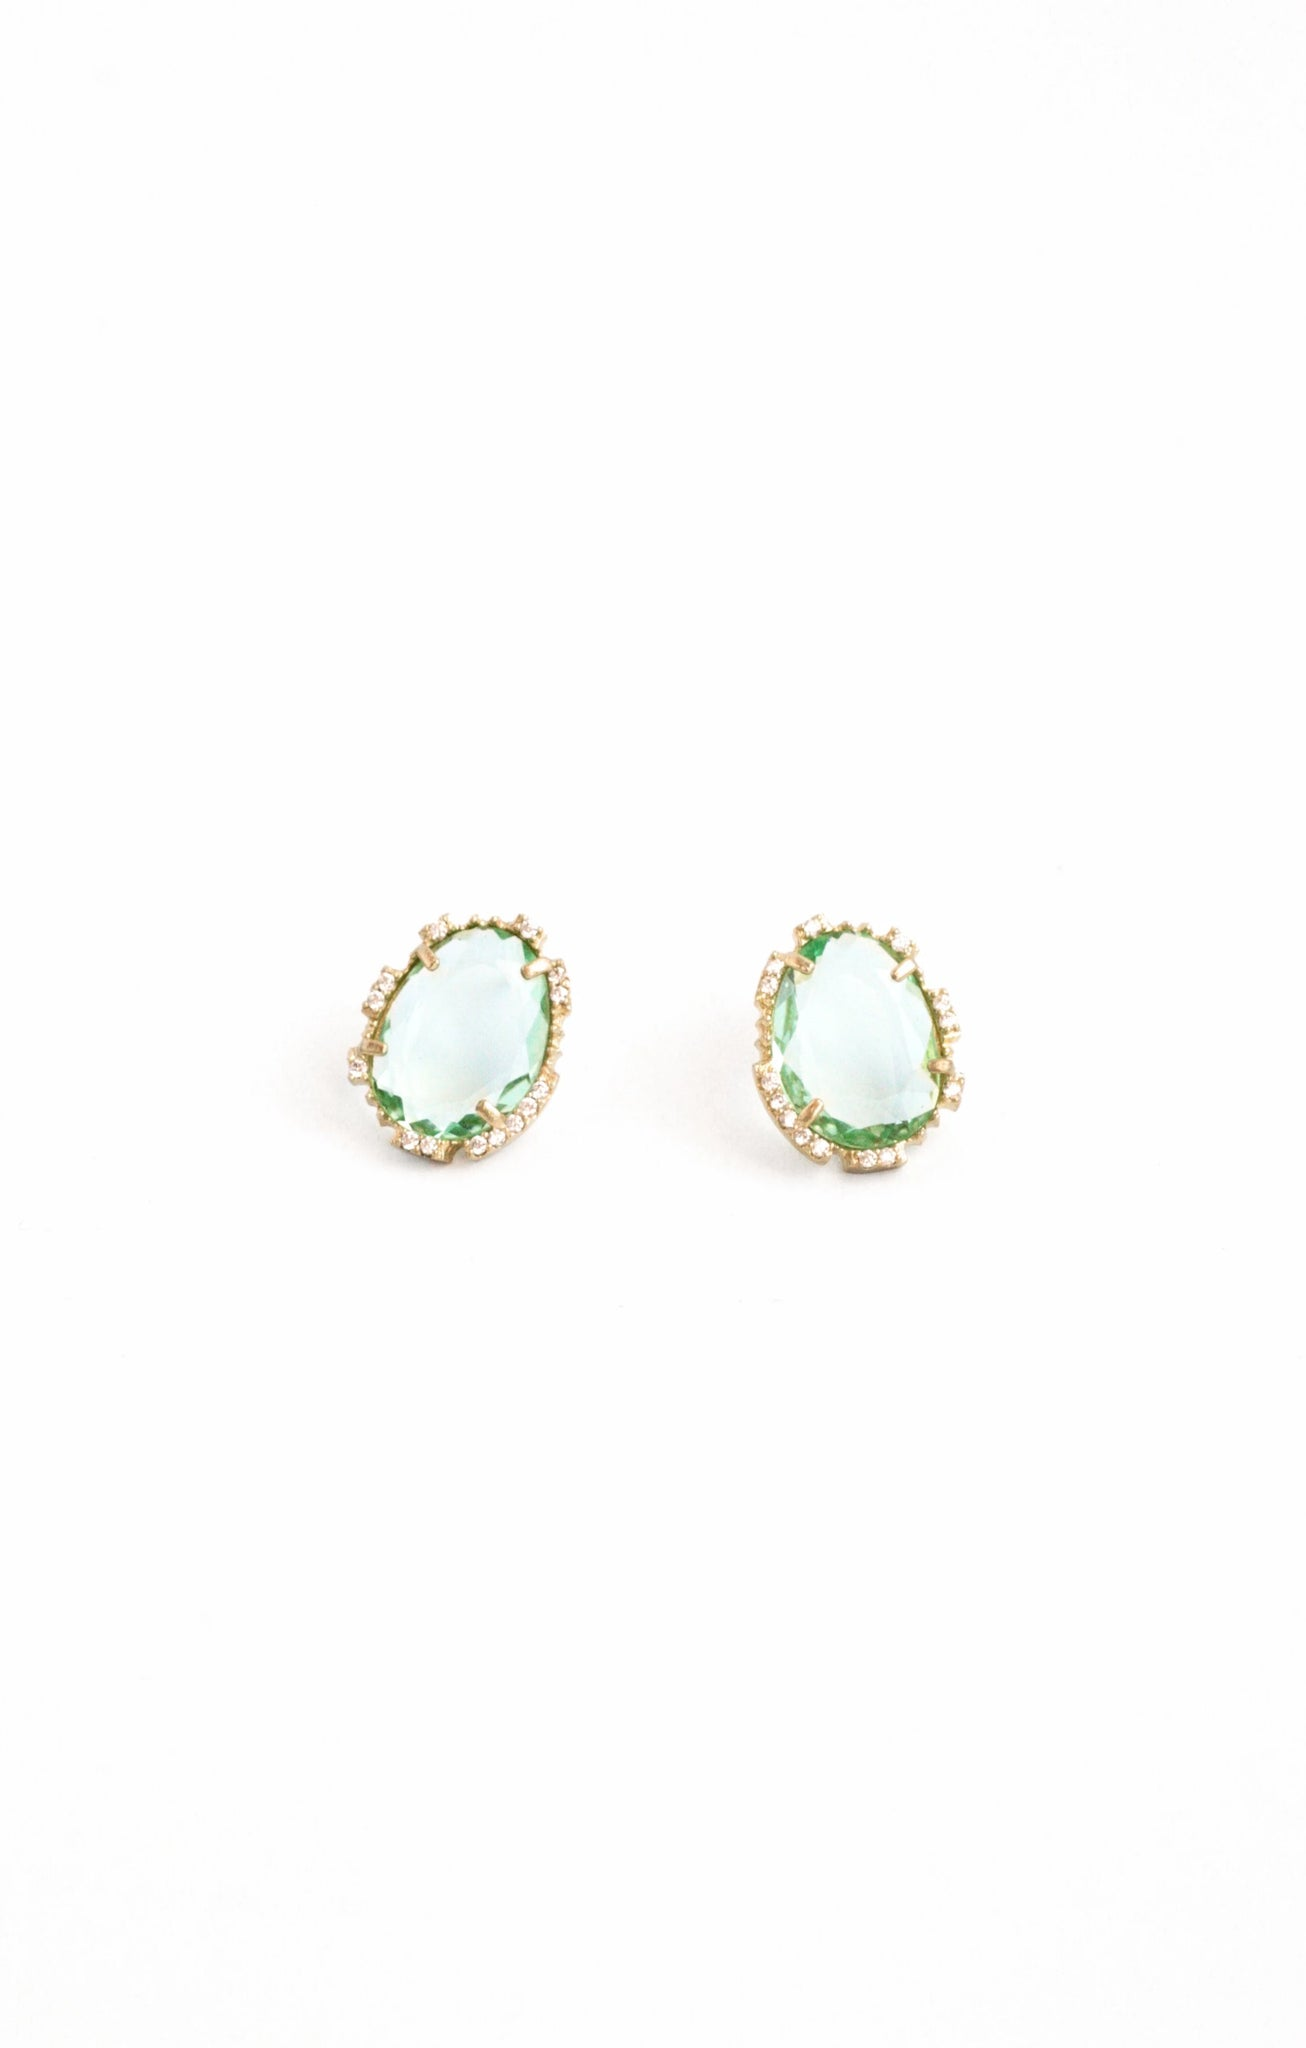 Statement Post Earrings - Mint